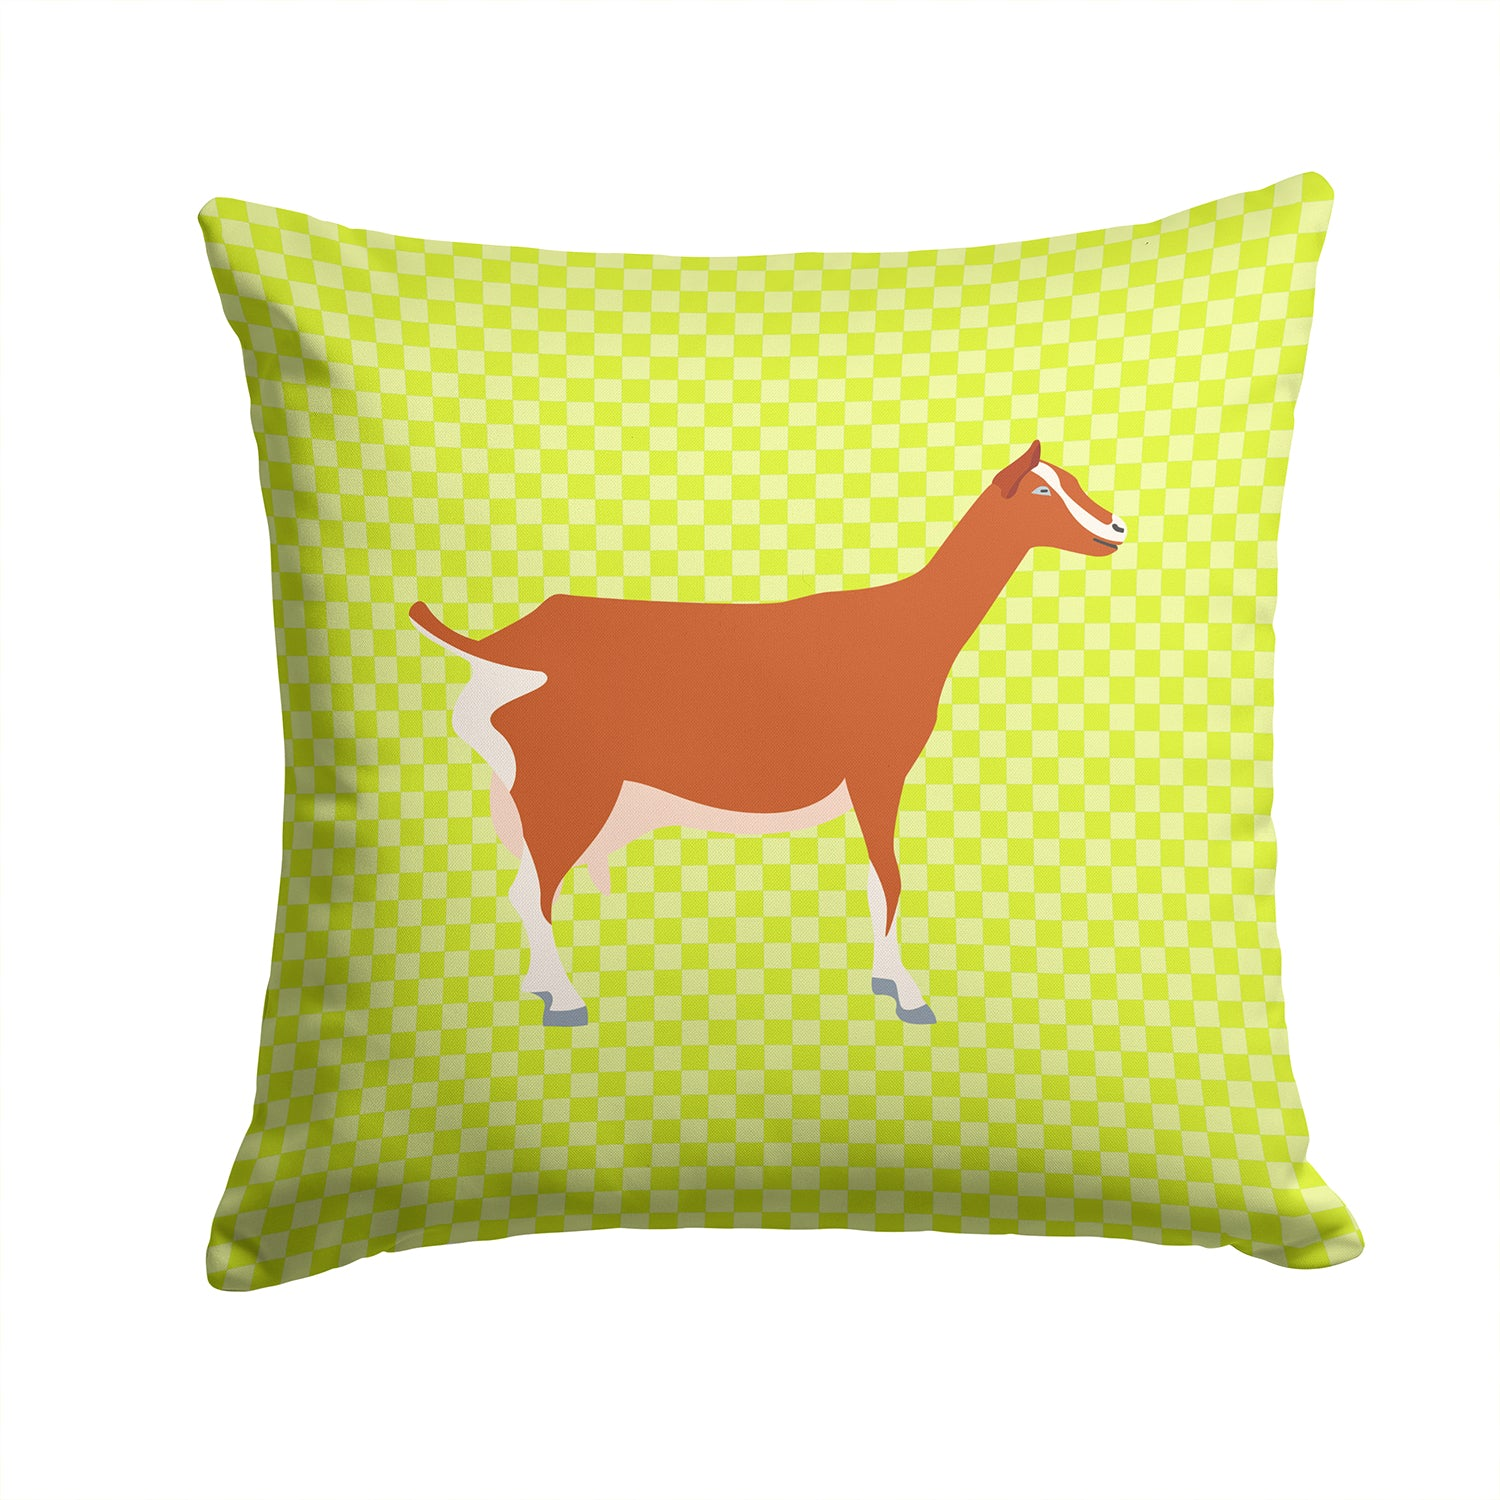 Toggenburger Goat Green Fabric Decorative Pillow BB7707PW1414 by Caroline's Treasures